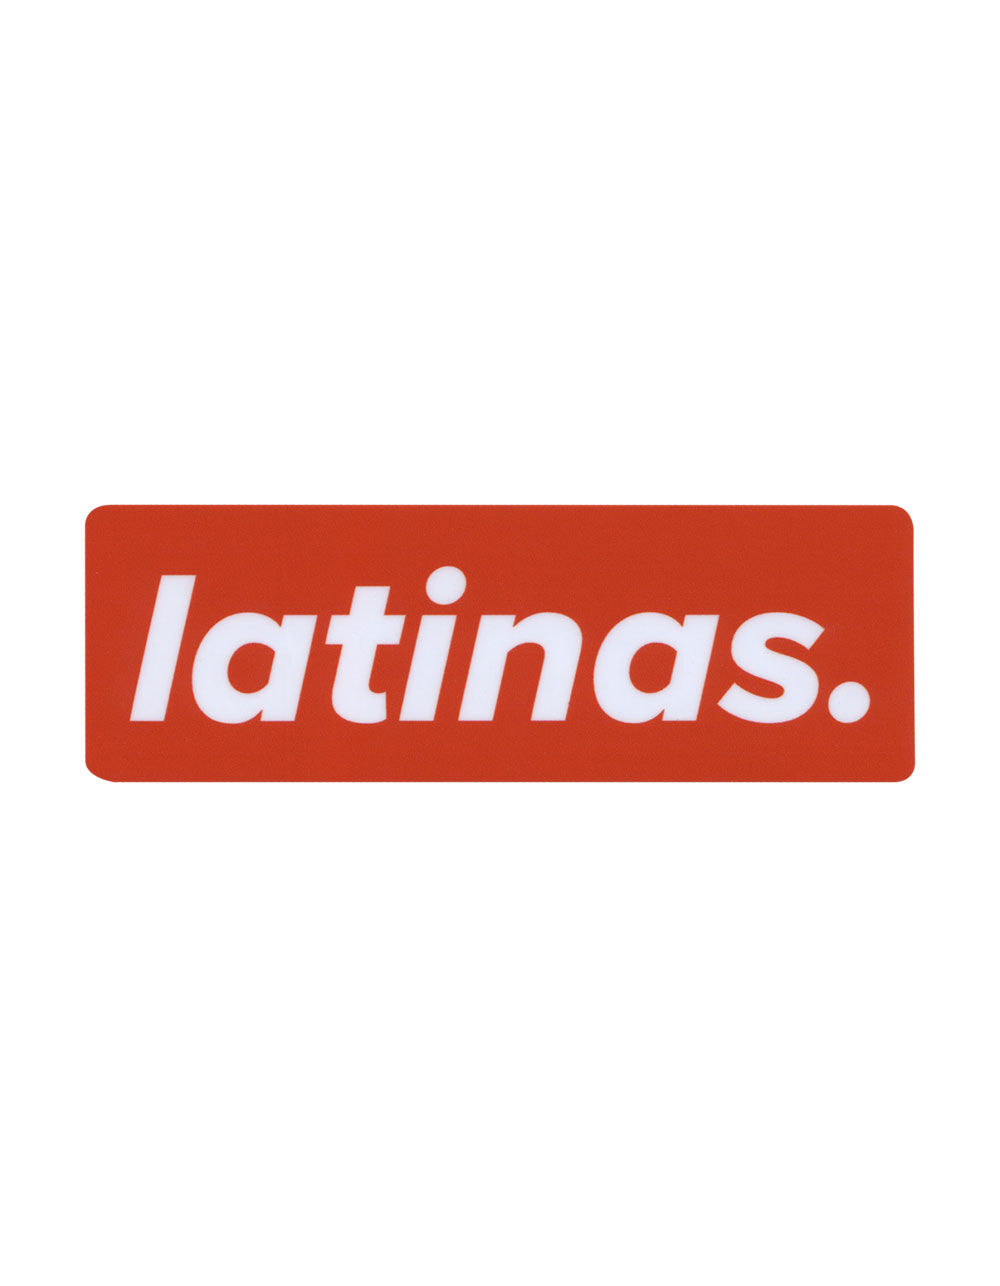 STICKIE BANDITS Latinas Sticker